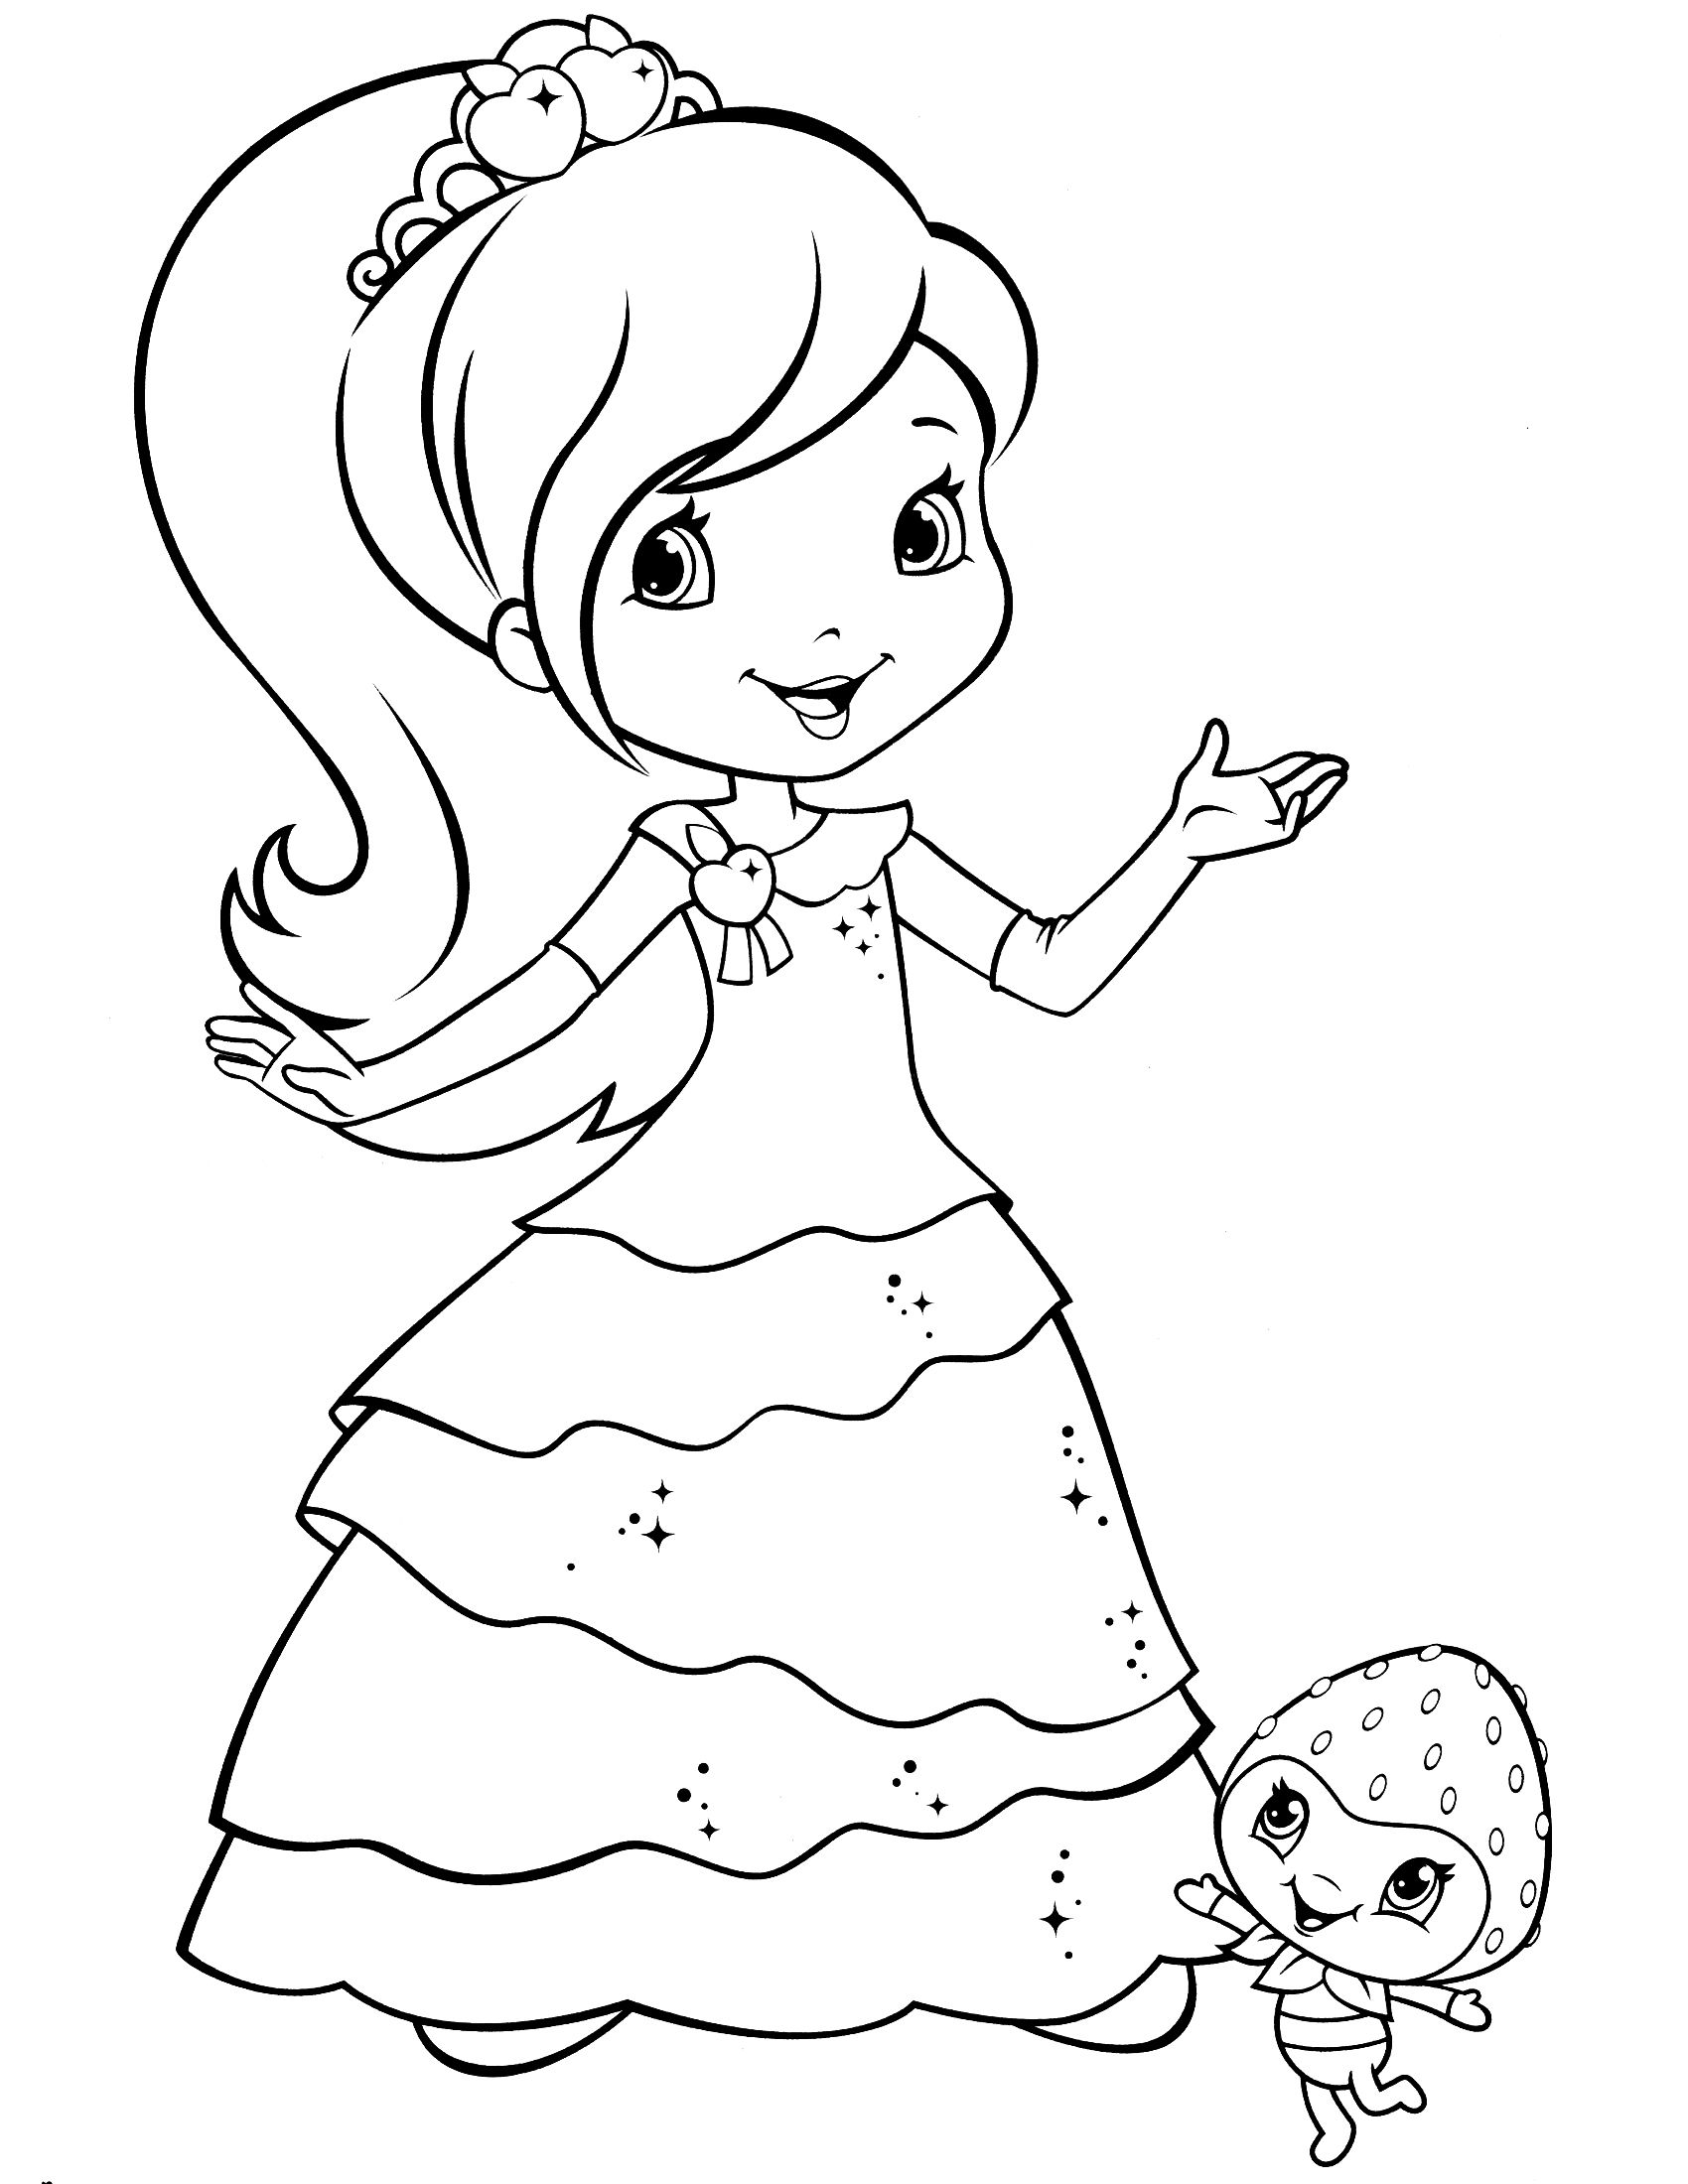 Uncategorized Coloring Strawberry Shortcake strawberry shortcake coloring page page